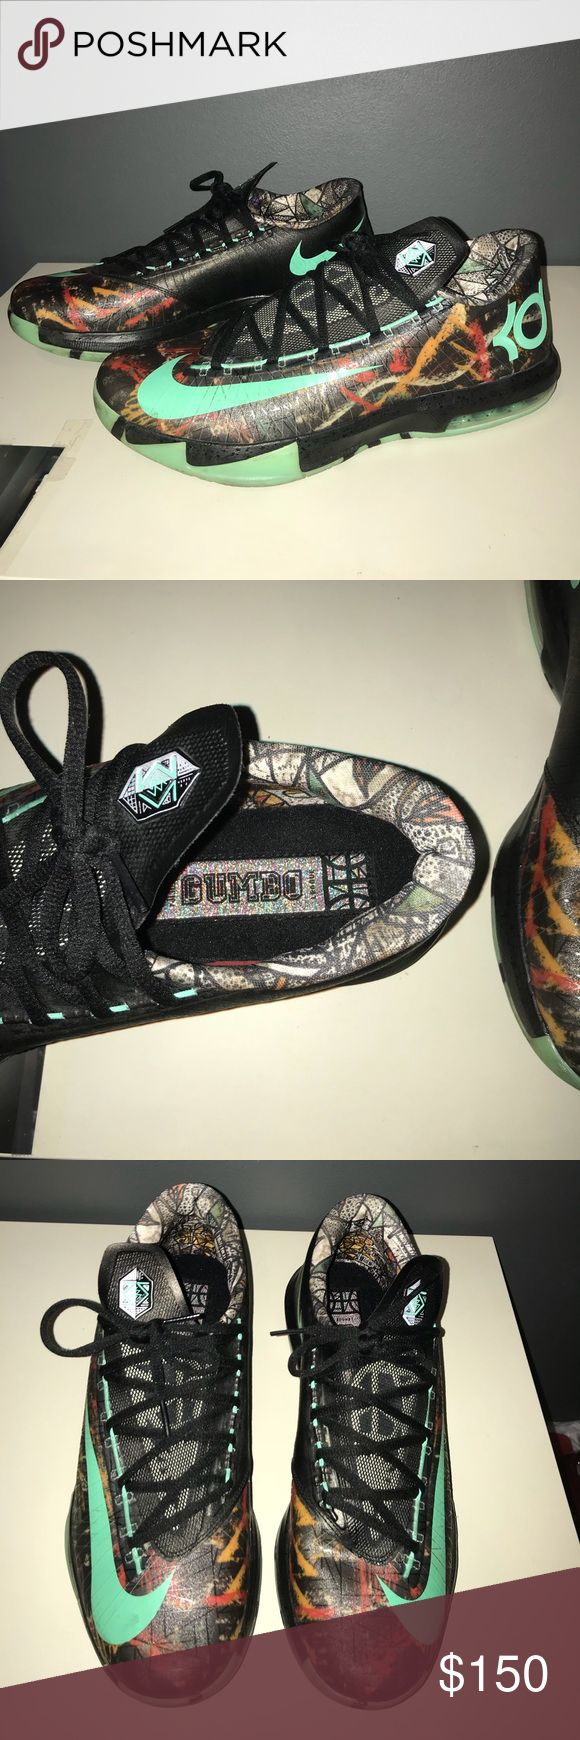 """KD 6 VI Mens Basketball Shoes - KD 6 - """"As Gumbo"""" KD 6 VI GUMBO Mens Basketball Shoes Kevin Durant 6 all Star LED KD 6 Glow Dark Sneakers. Worn 2x. Condition 9.5/10. SIZE 11 Nike Shoes Athletic Shoes"""